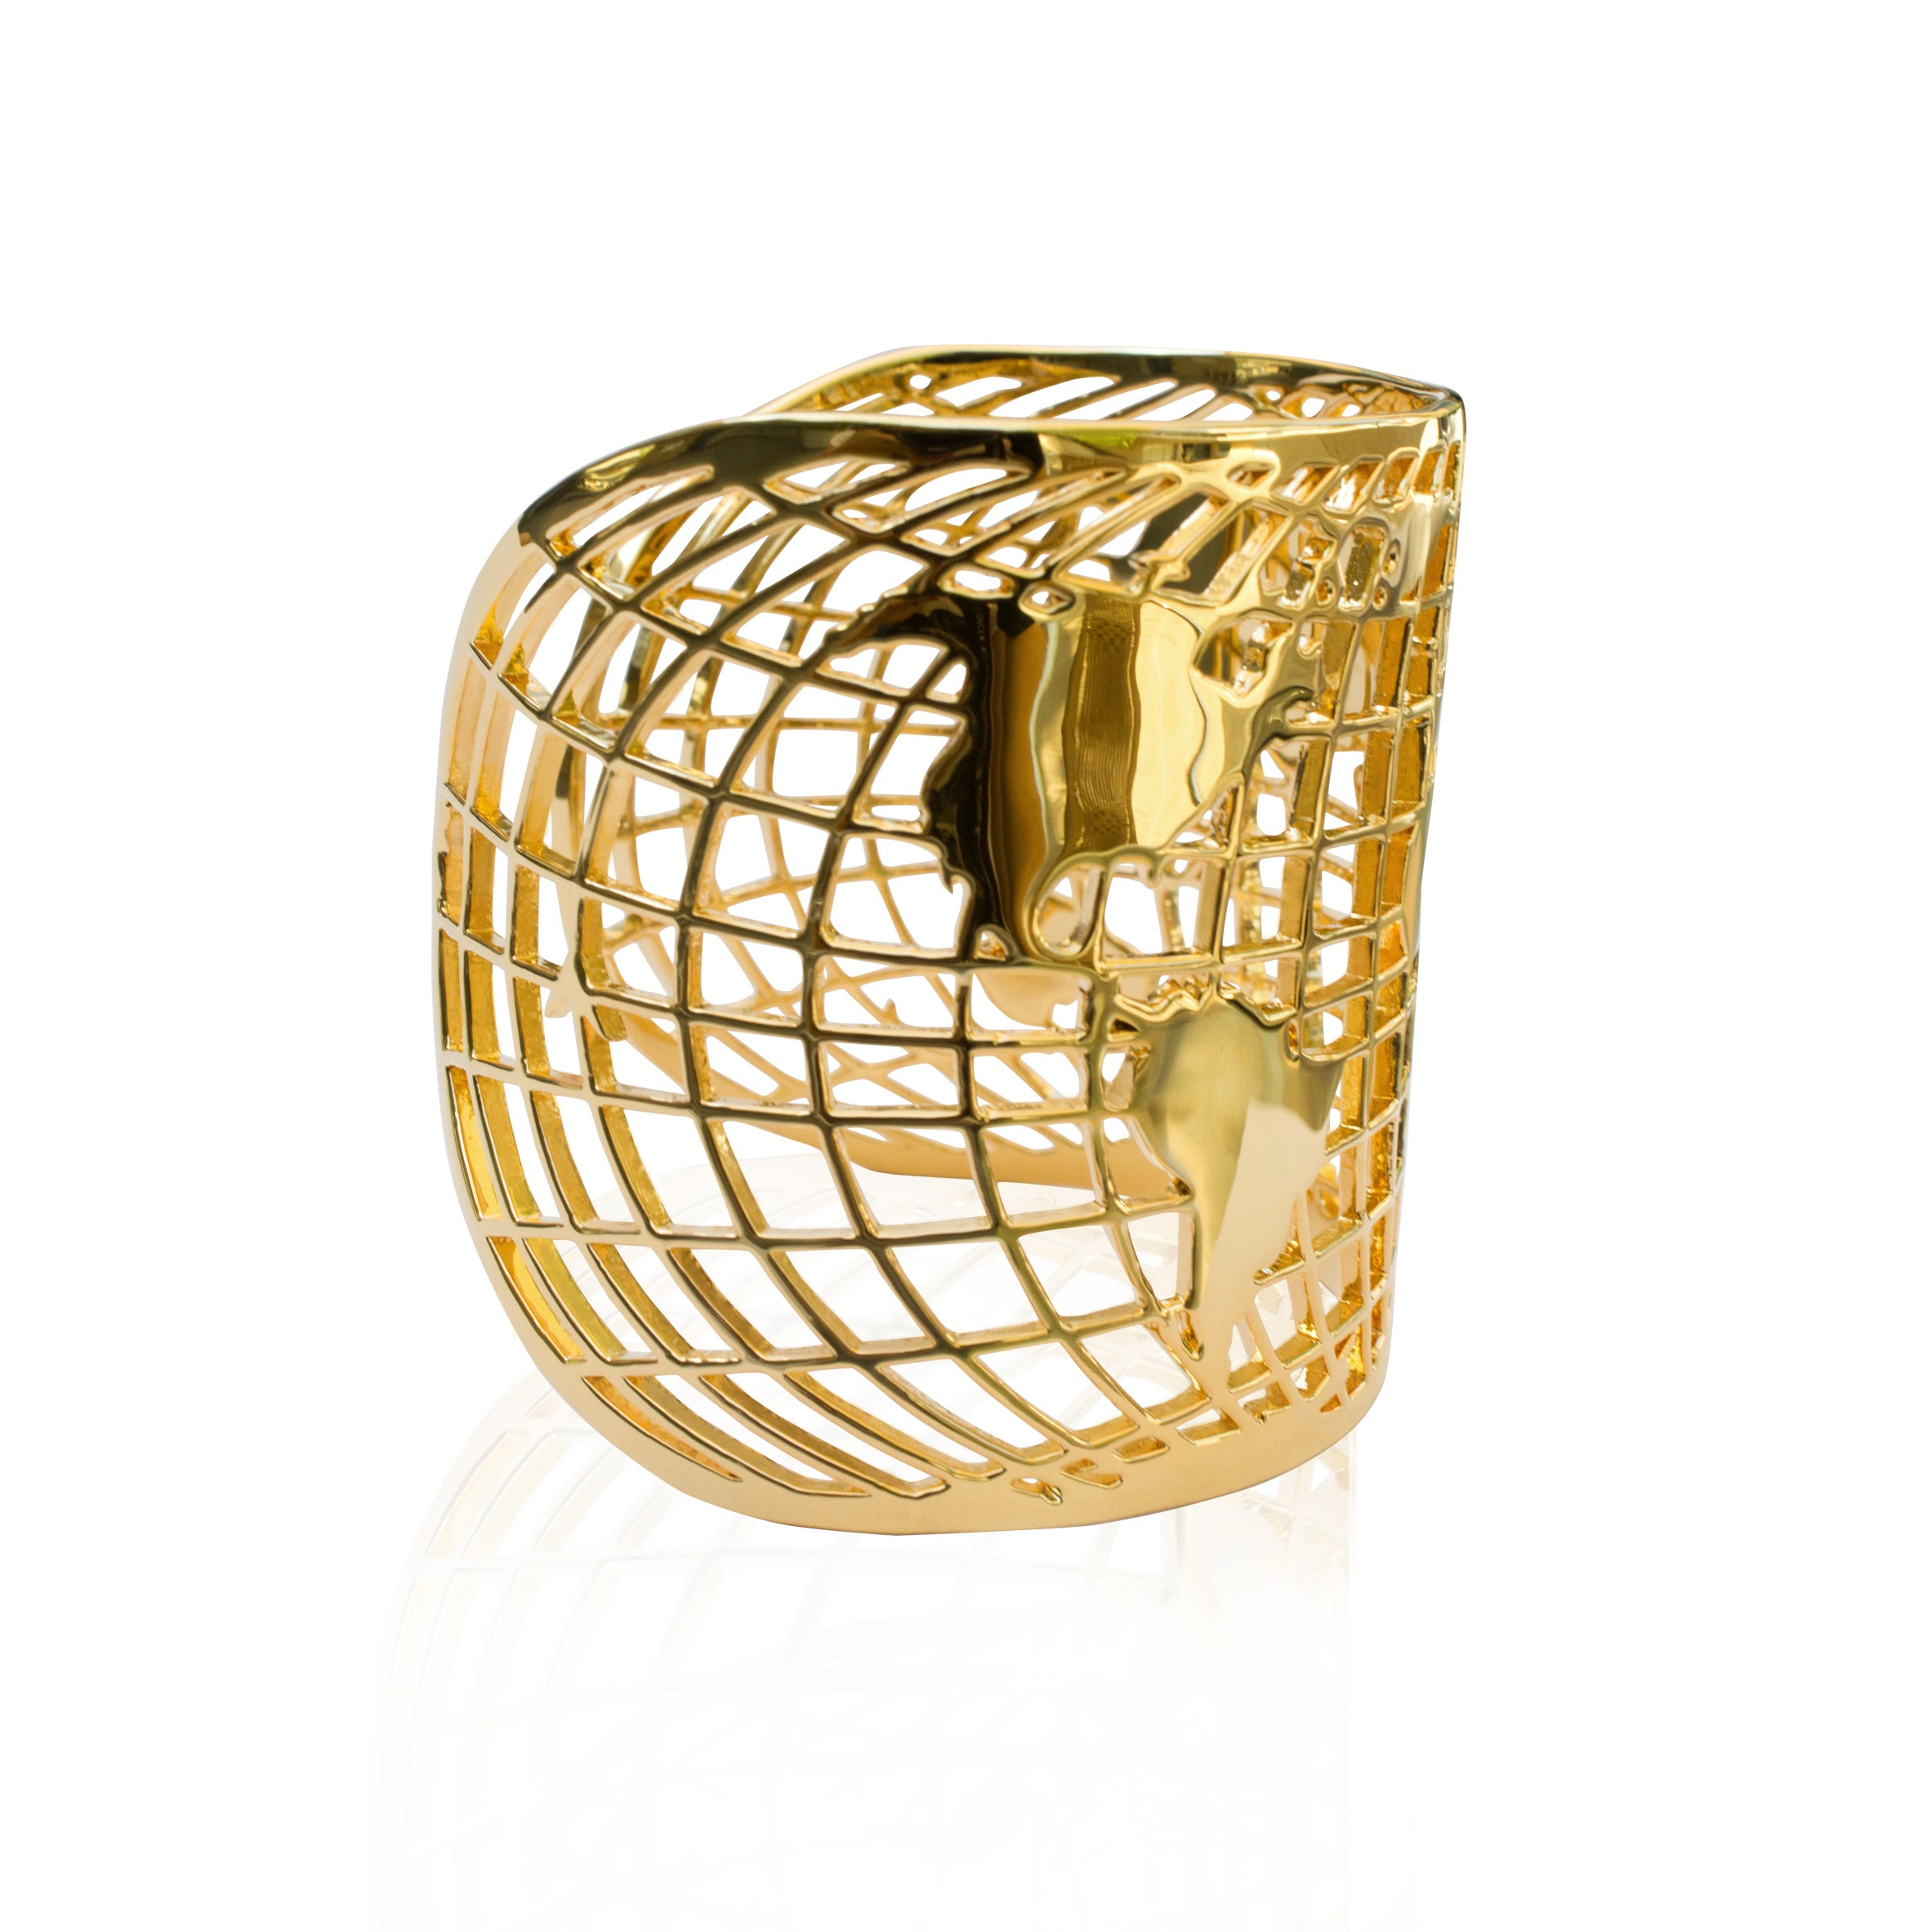 Sample Compass Cuff Gold Plated by Cristina Ramella